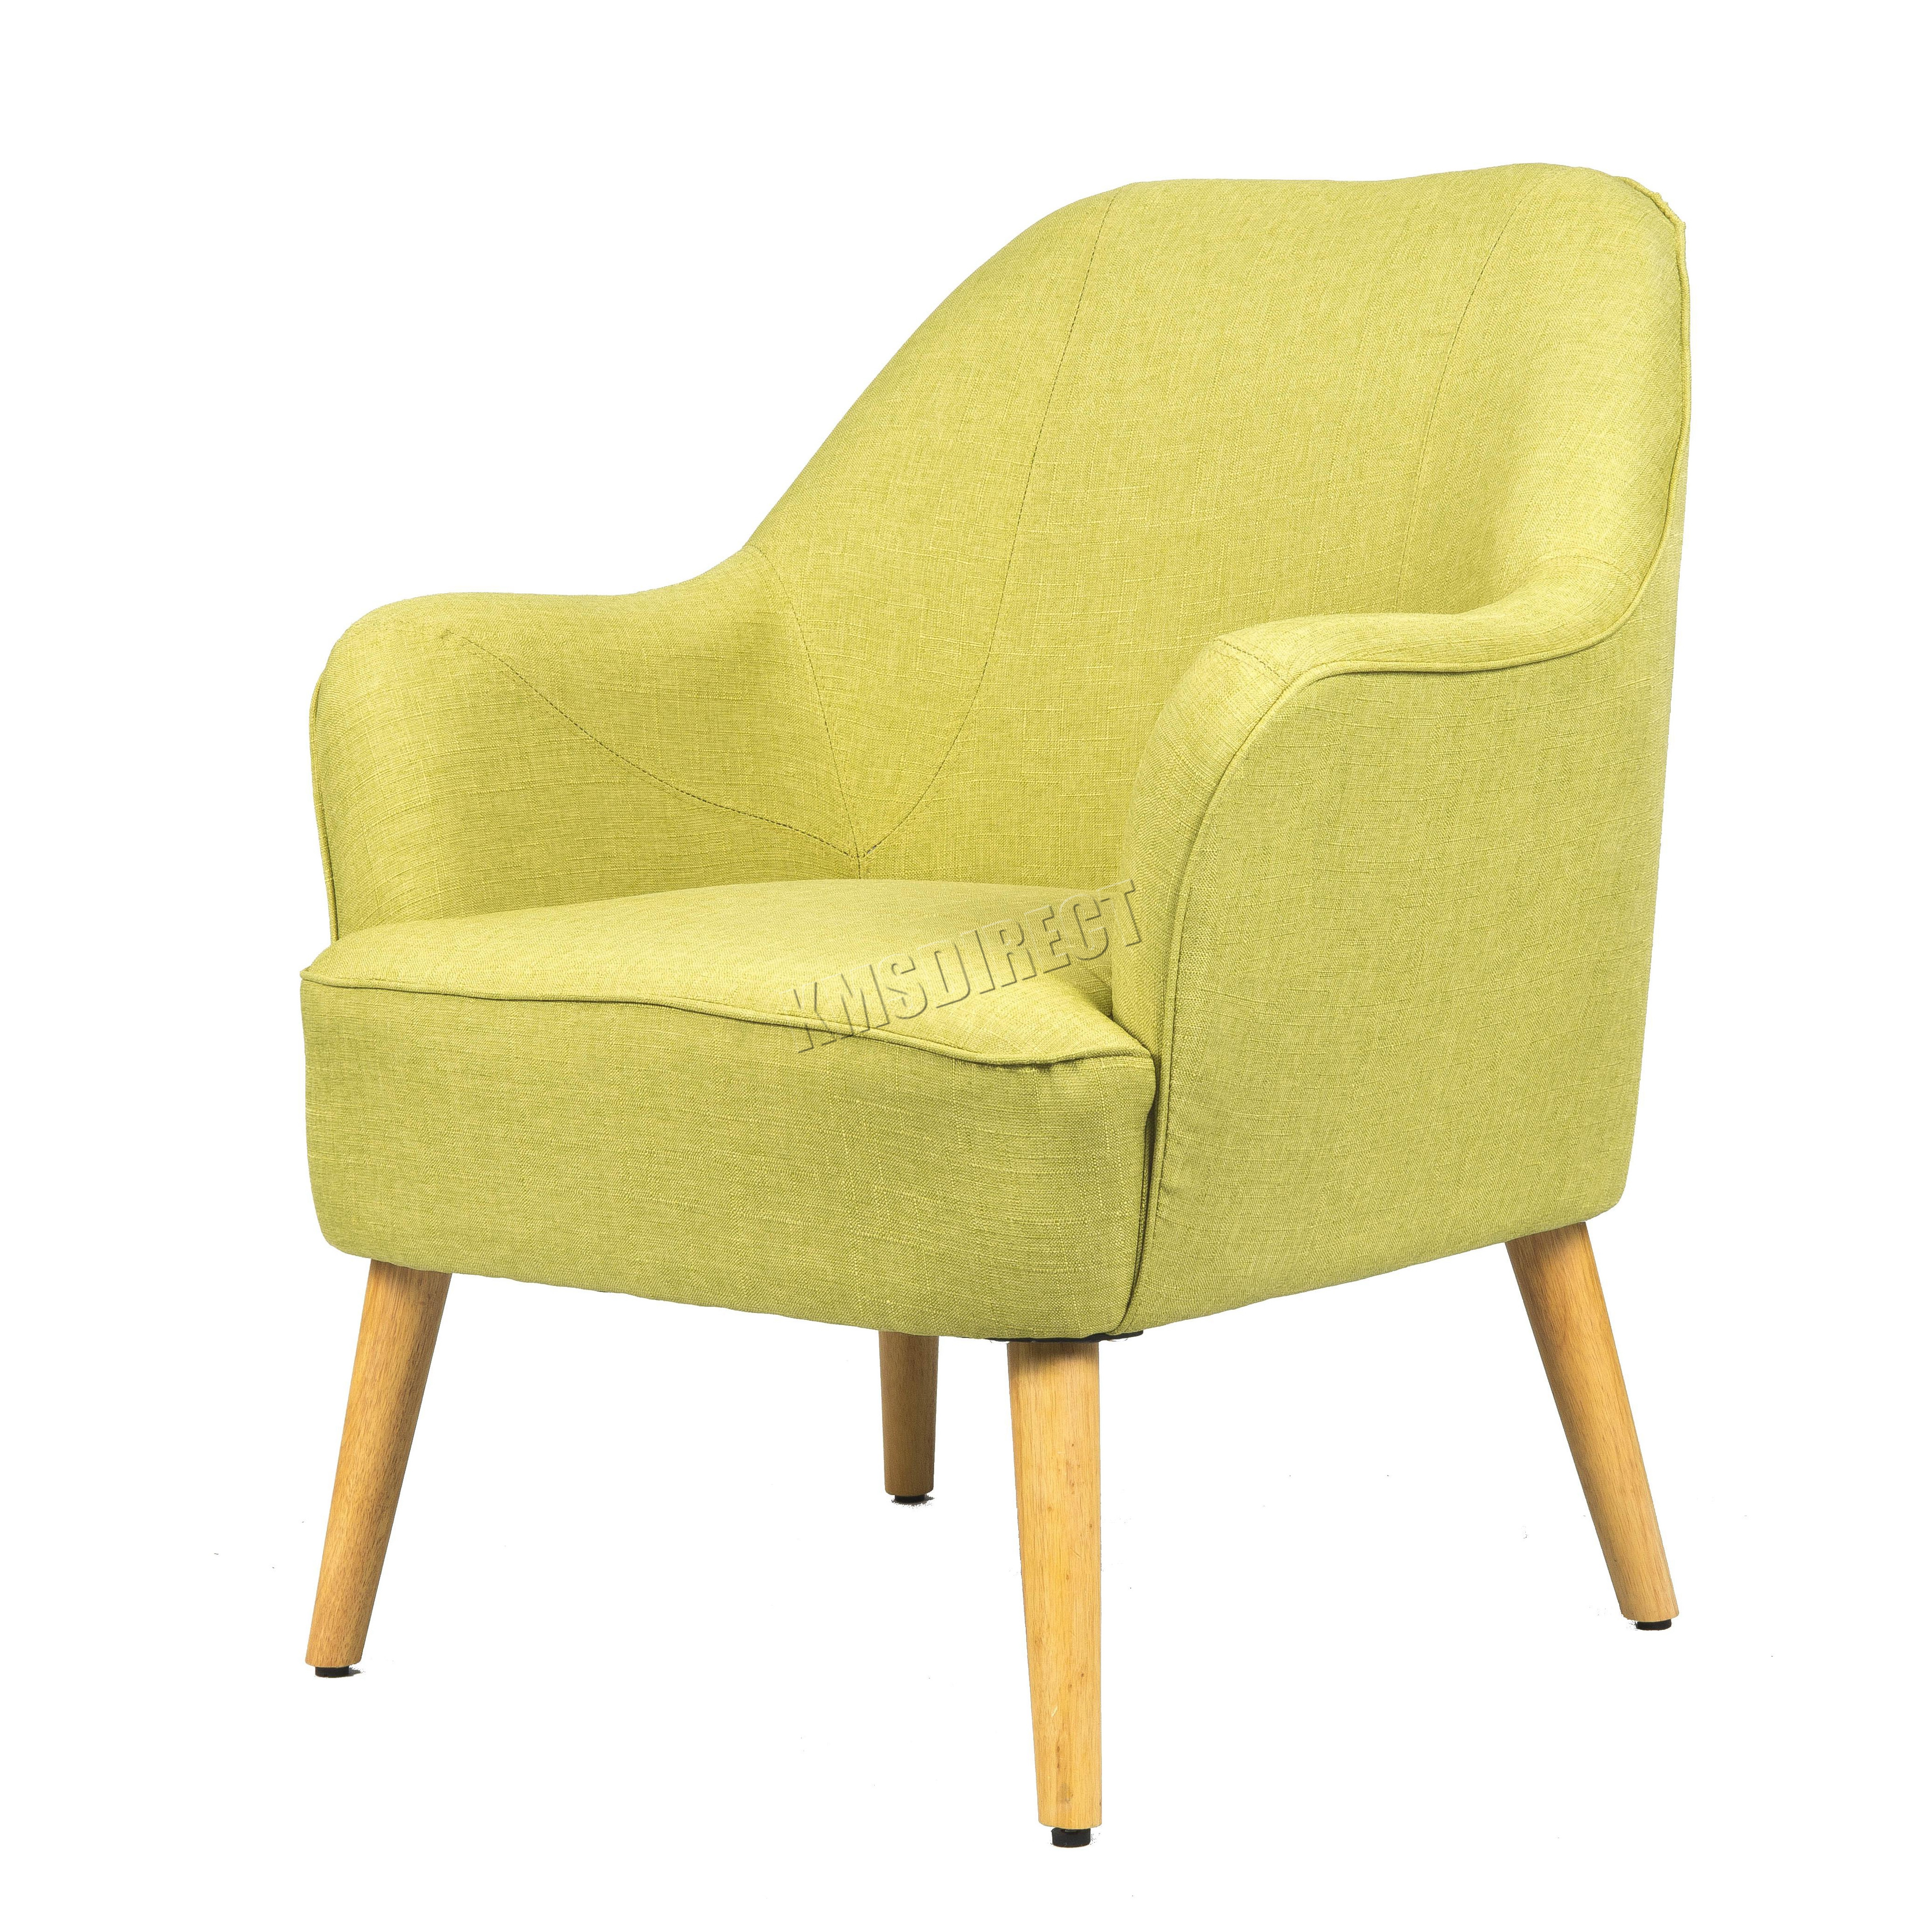 snazzy chairs etc collection on ebay